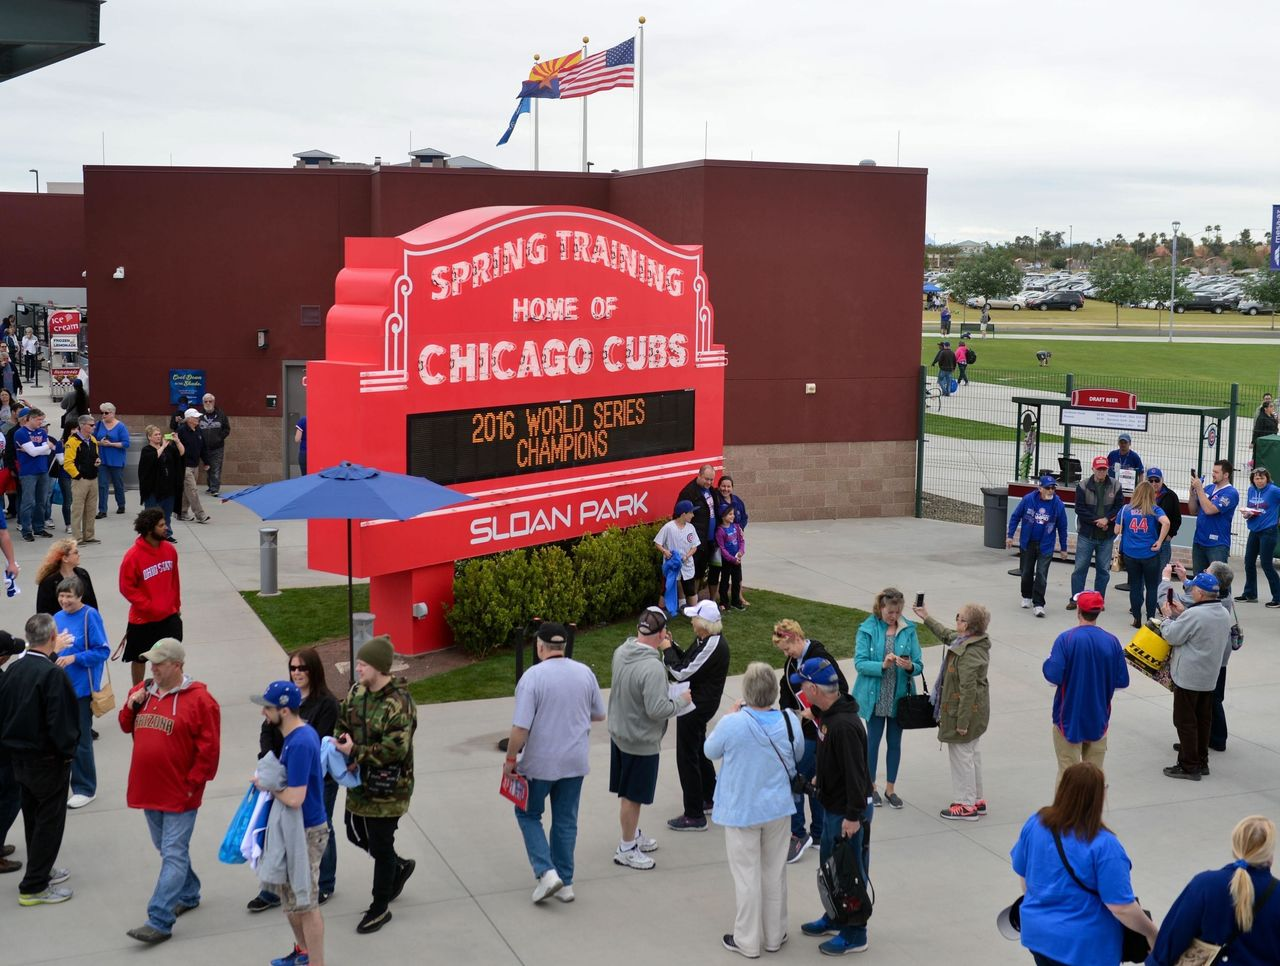 Cropped 2017 02 27t224707z 1808062690 nocid rtrmadp 3 mlb spring training chicago white sox at chicago cubs